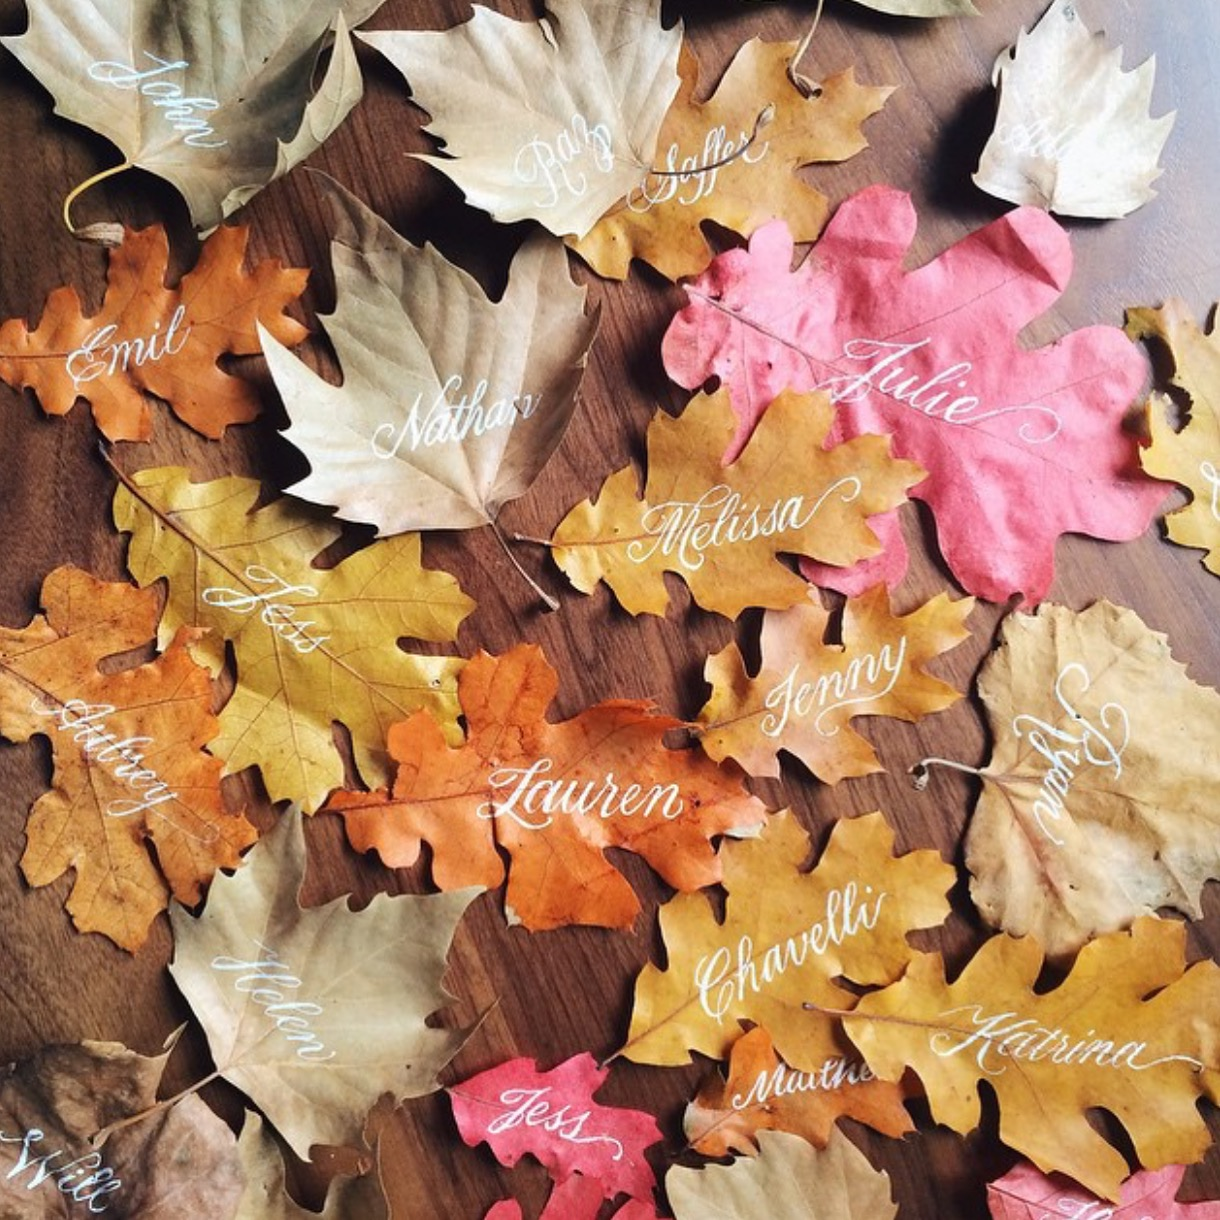 Script calligraphy on dried leaves as fall dinner party place cards   by www.chavelli.com